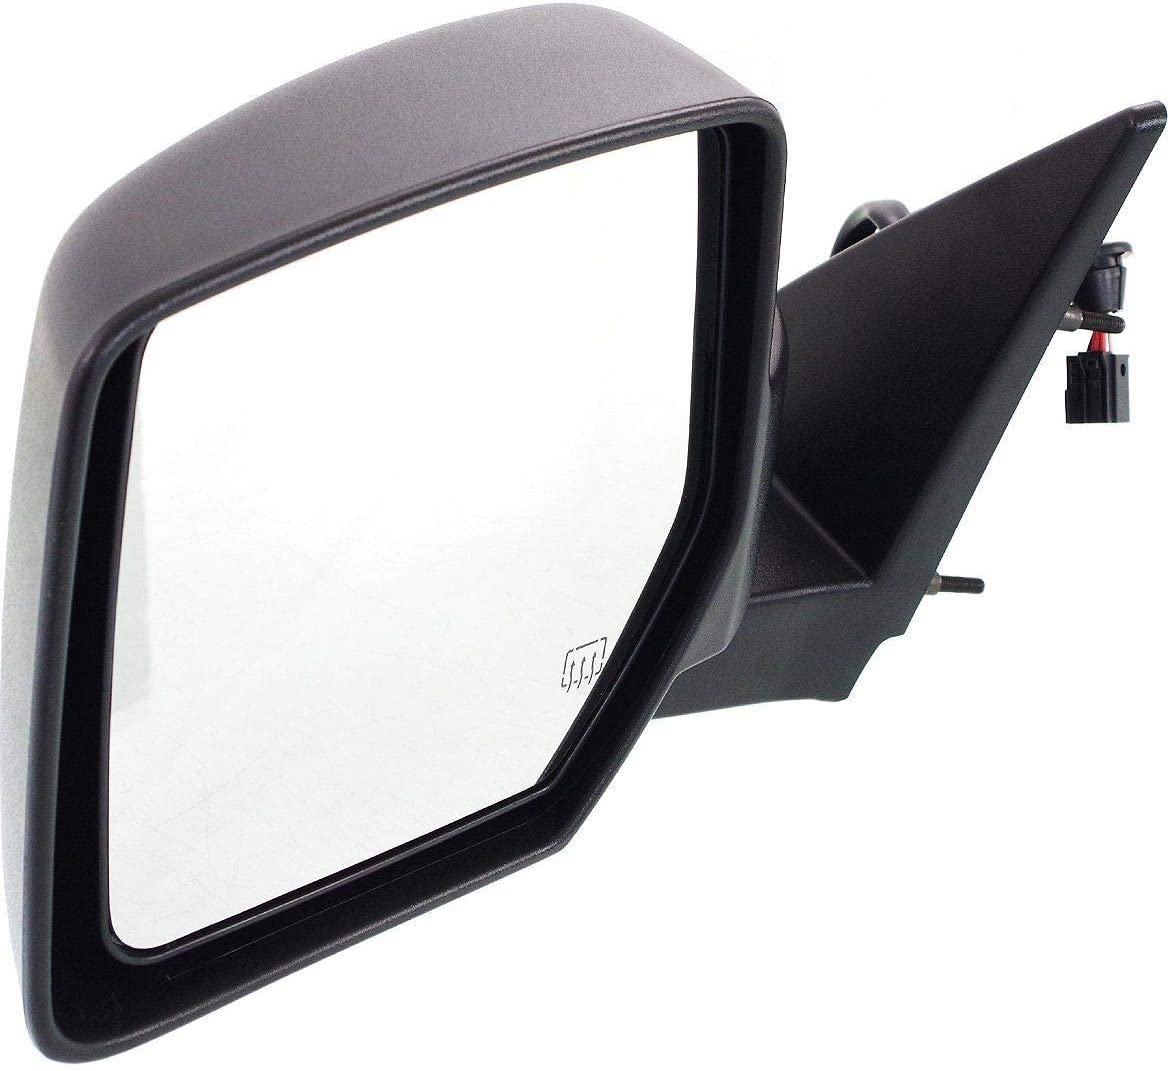 NEW LEFT POWER MIRROR WITH HEATED GLASS FITS 2007-2011 DODGE NITRO CH1320278